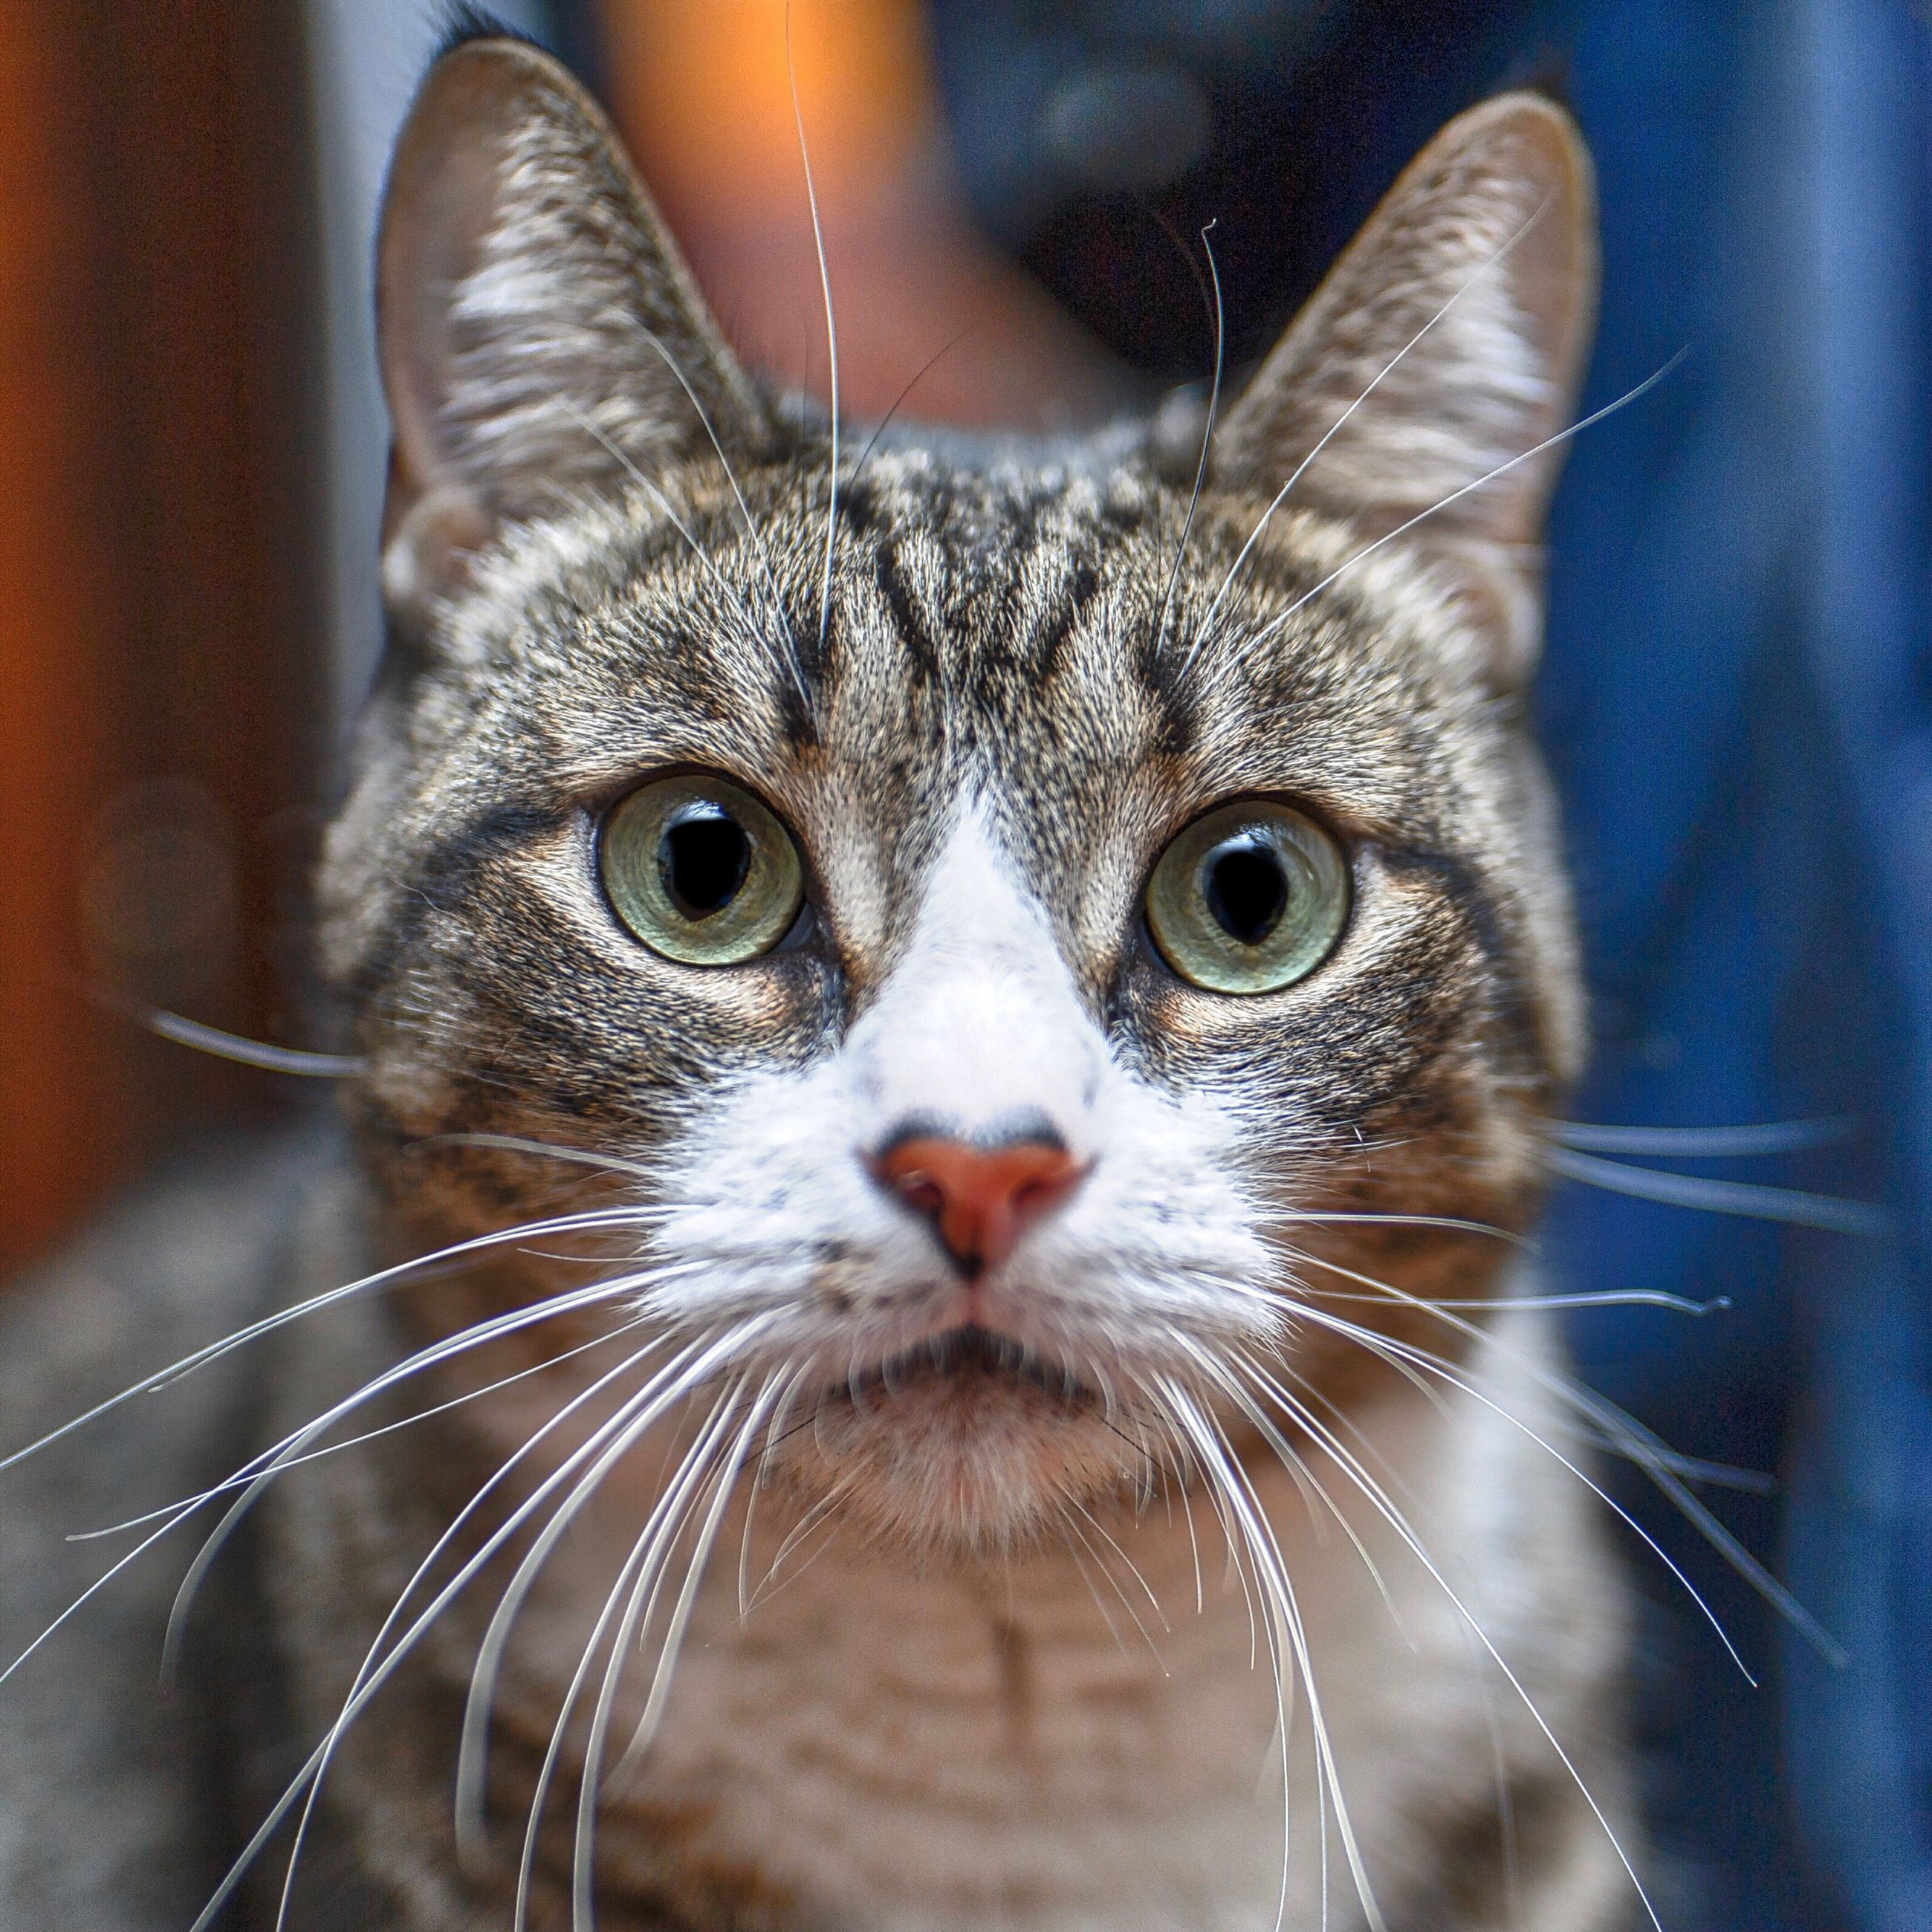 looking at camera, animal themes, domestic cat, pets, mammal, one animal, domestic animals, portrait, feline, close-up, whisker, animal body part, no people, indoors, animal eye, day